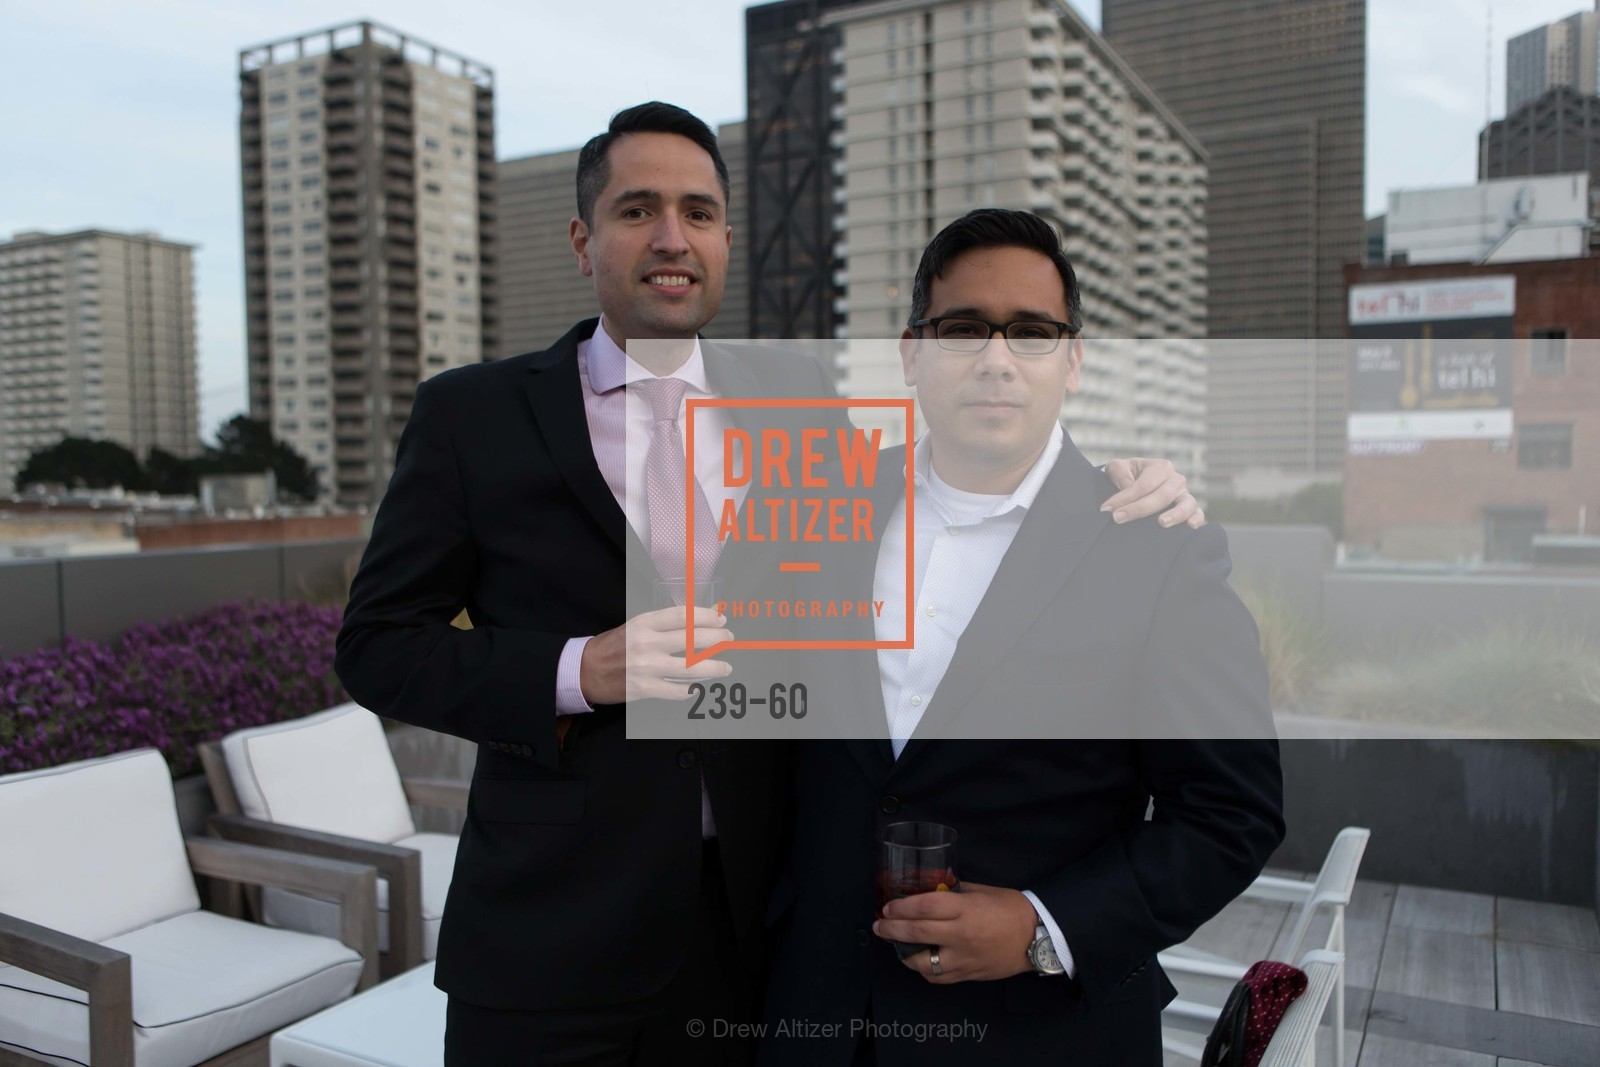 Aaron Barrera, Gonzalo Martinez, MR PORTER Celebrate The San Francisco Issue of The Journal, The Battery Rooftop - The Battery SF, April 23rd, 2015,Drew Altizer, Drew Altizer Photography, full-service agency, private events, San Francisco photographer, photographer california